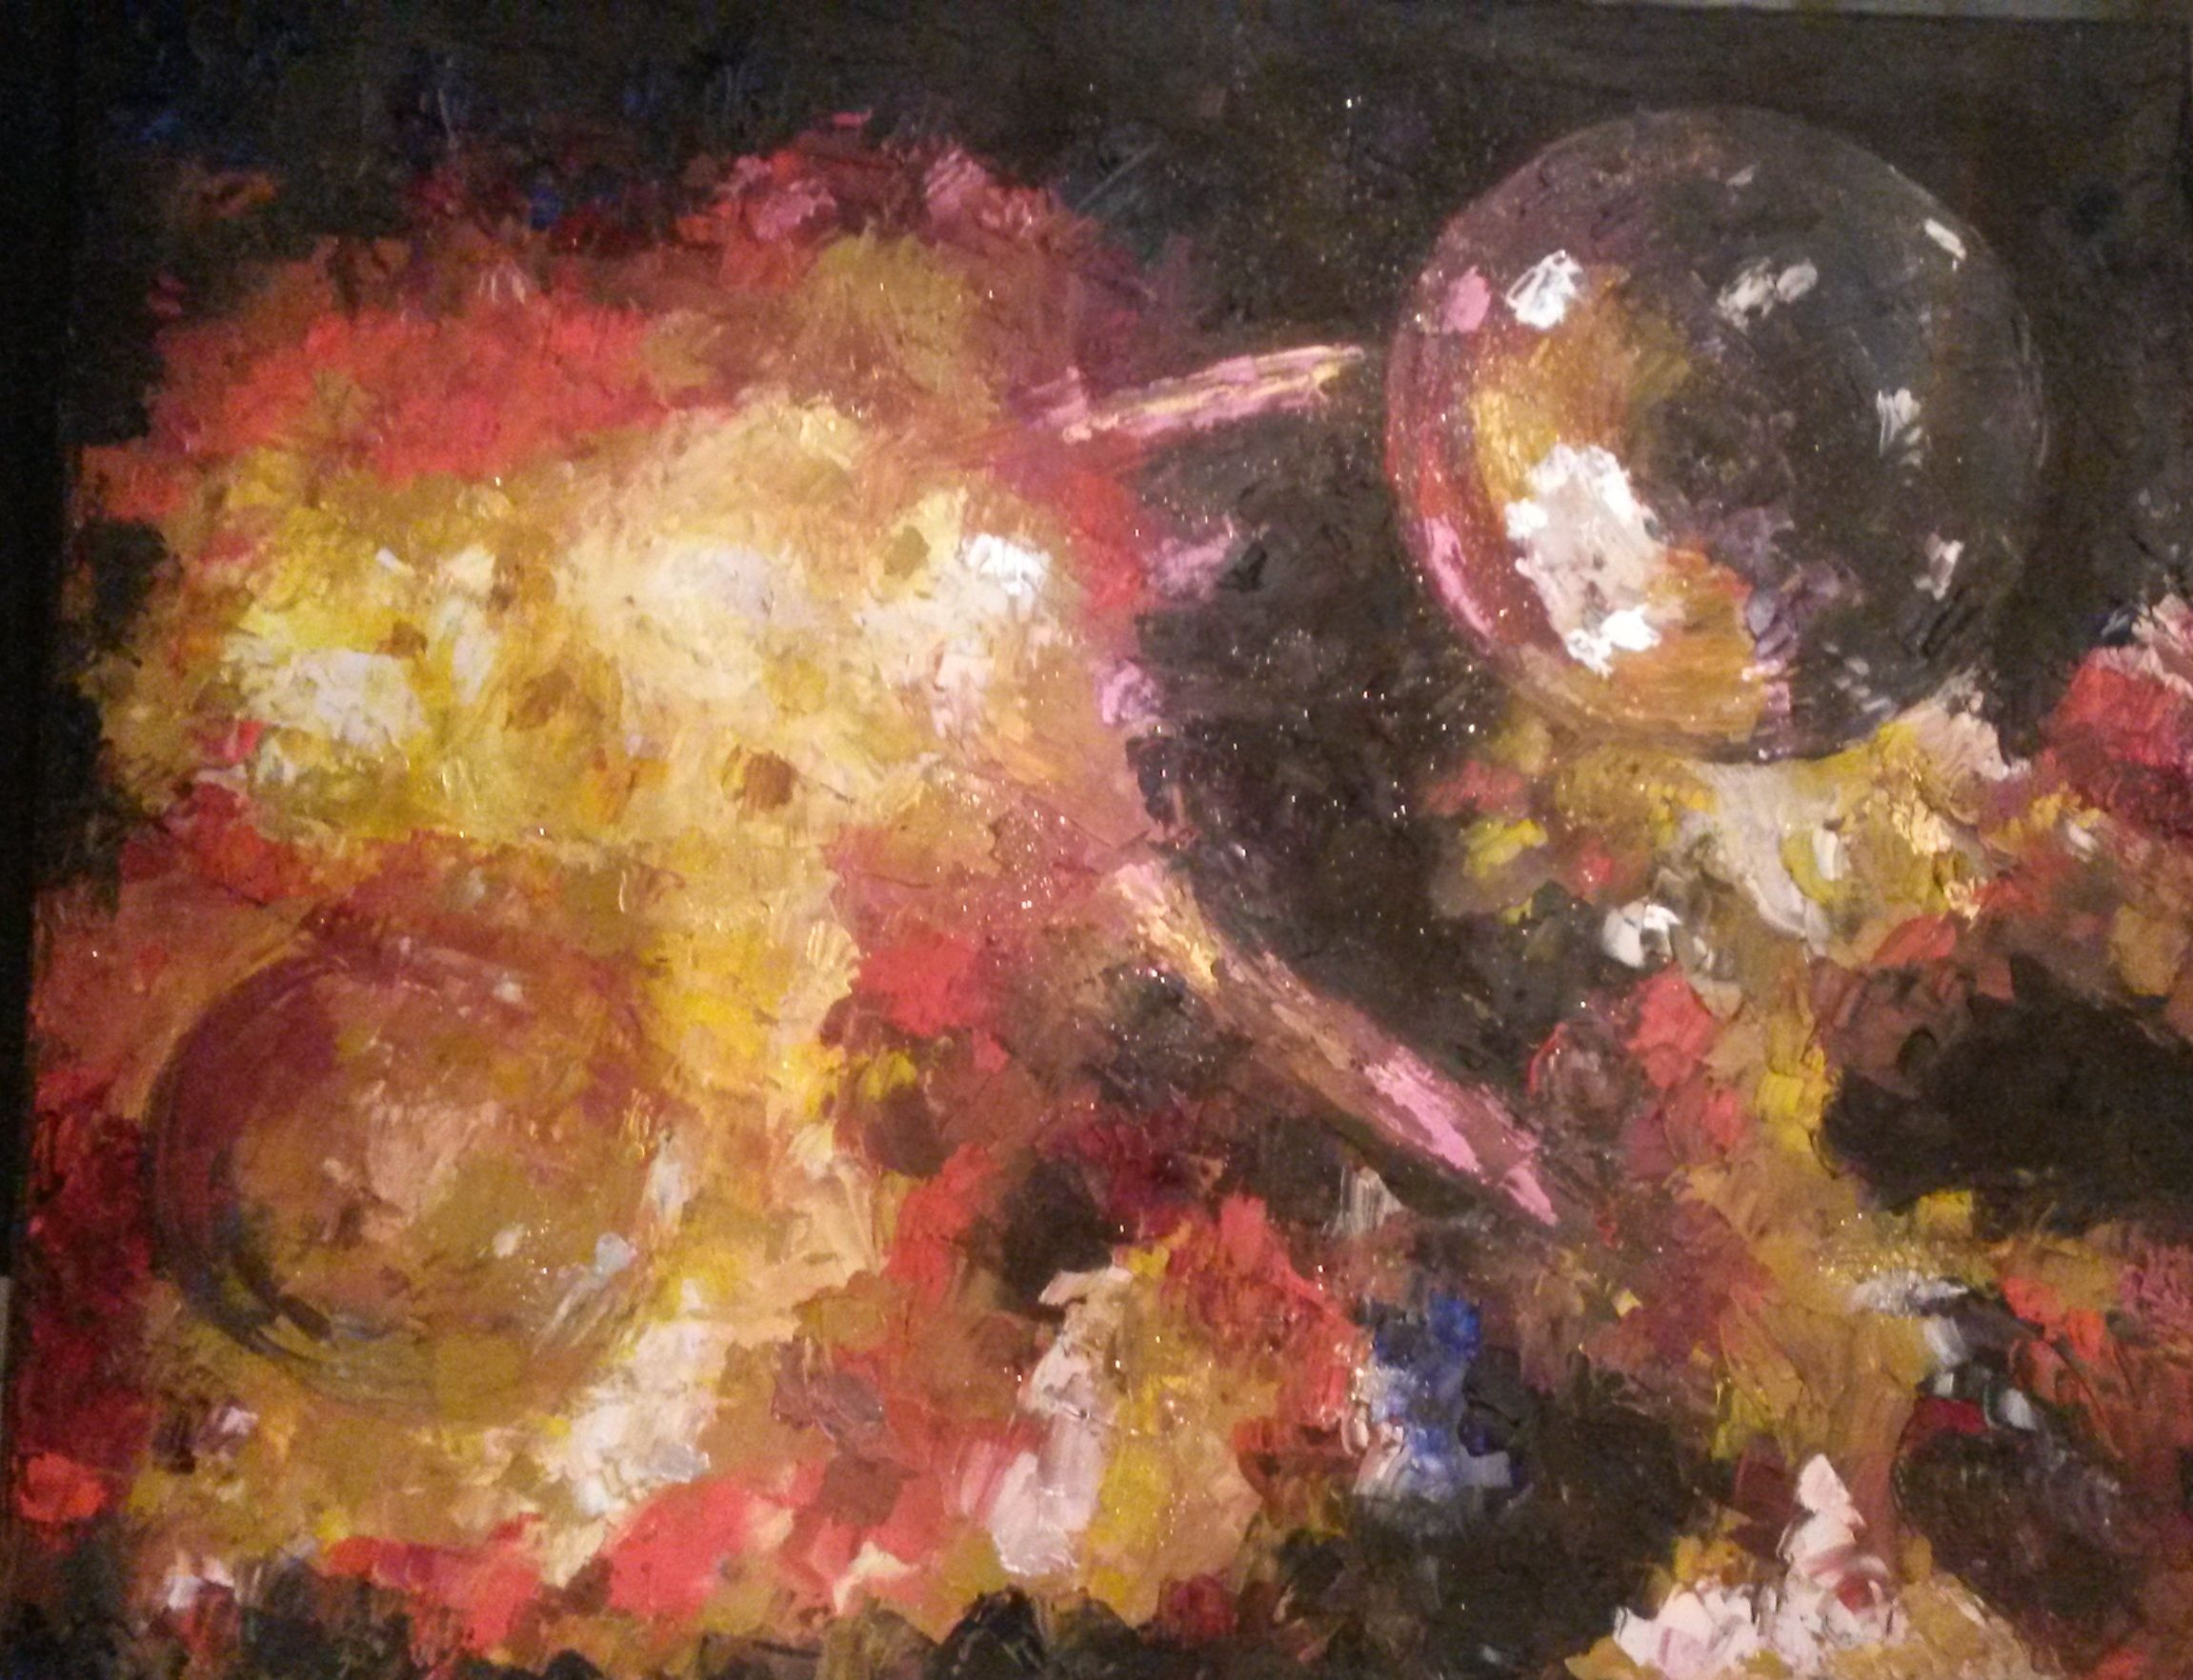 'Mercury,' inspired by Holst's Planet Suite. Oil, metallic paint and glitter on canvas.